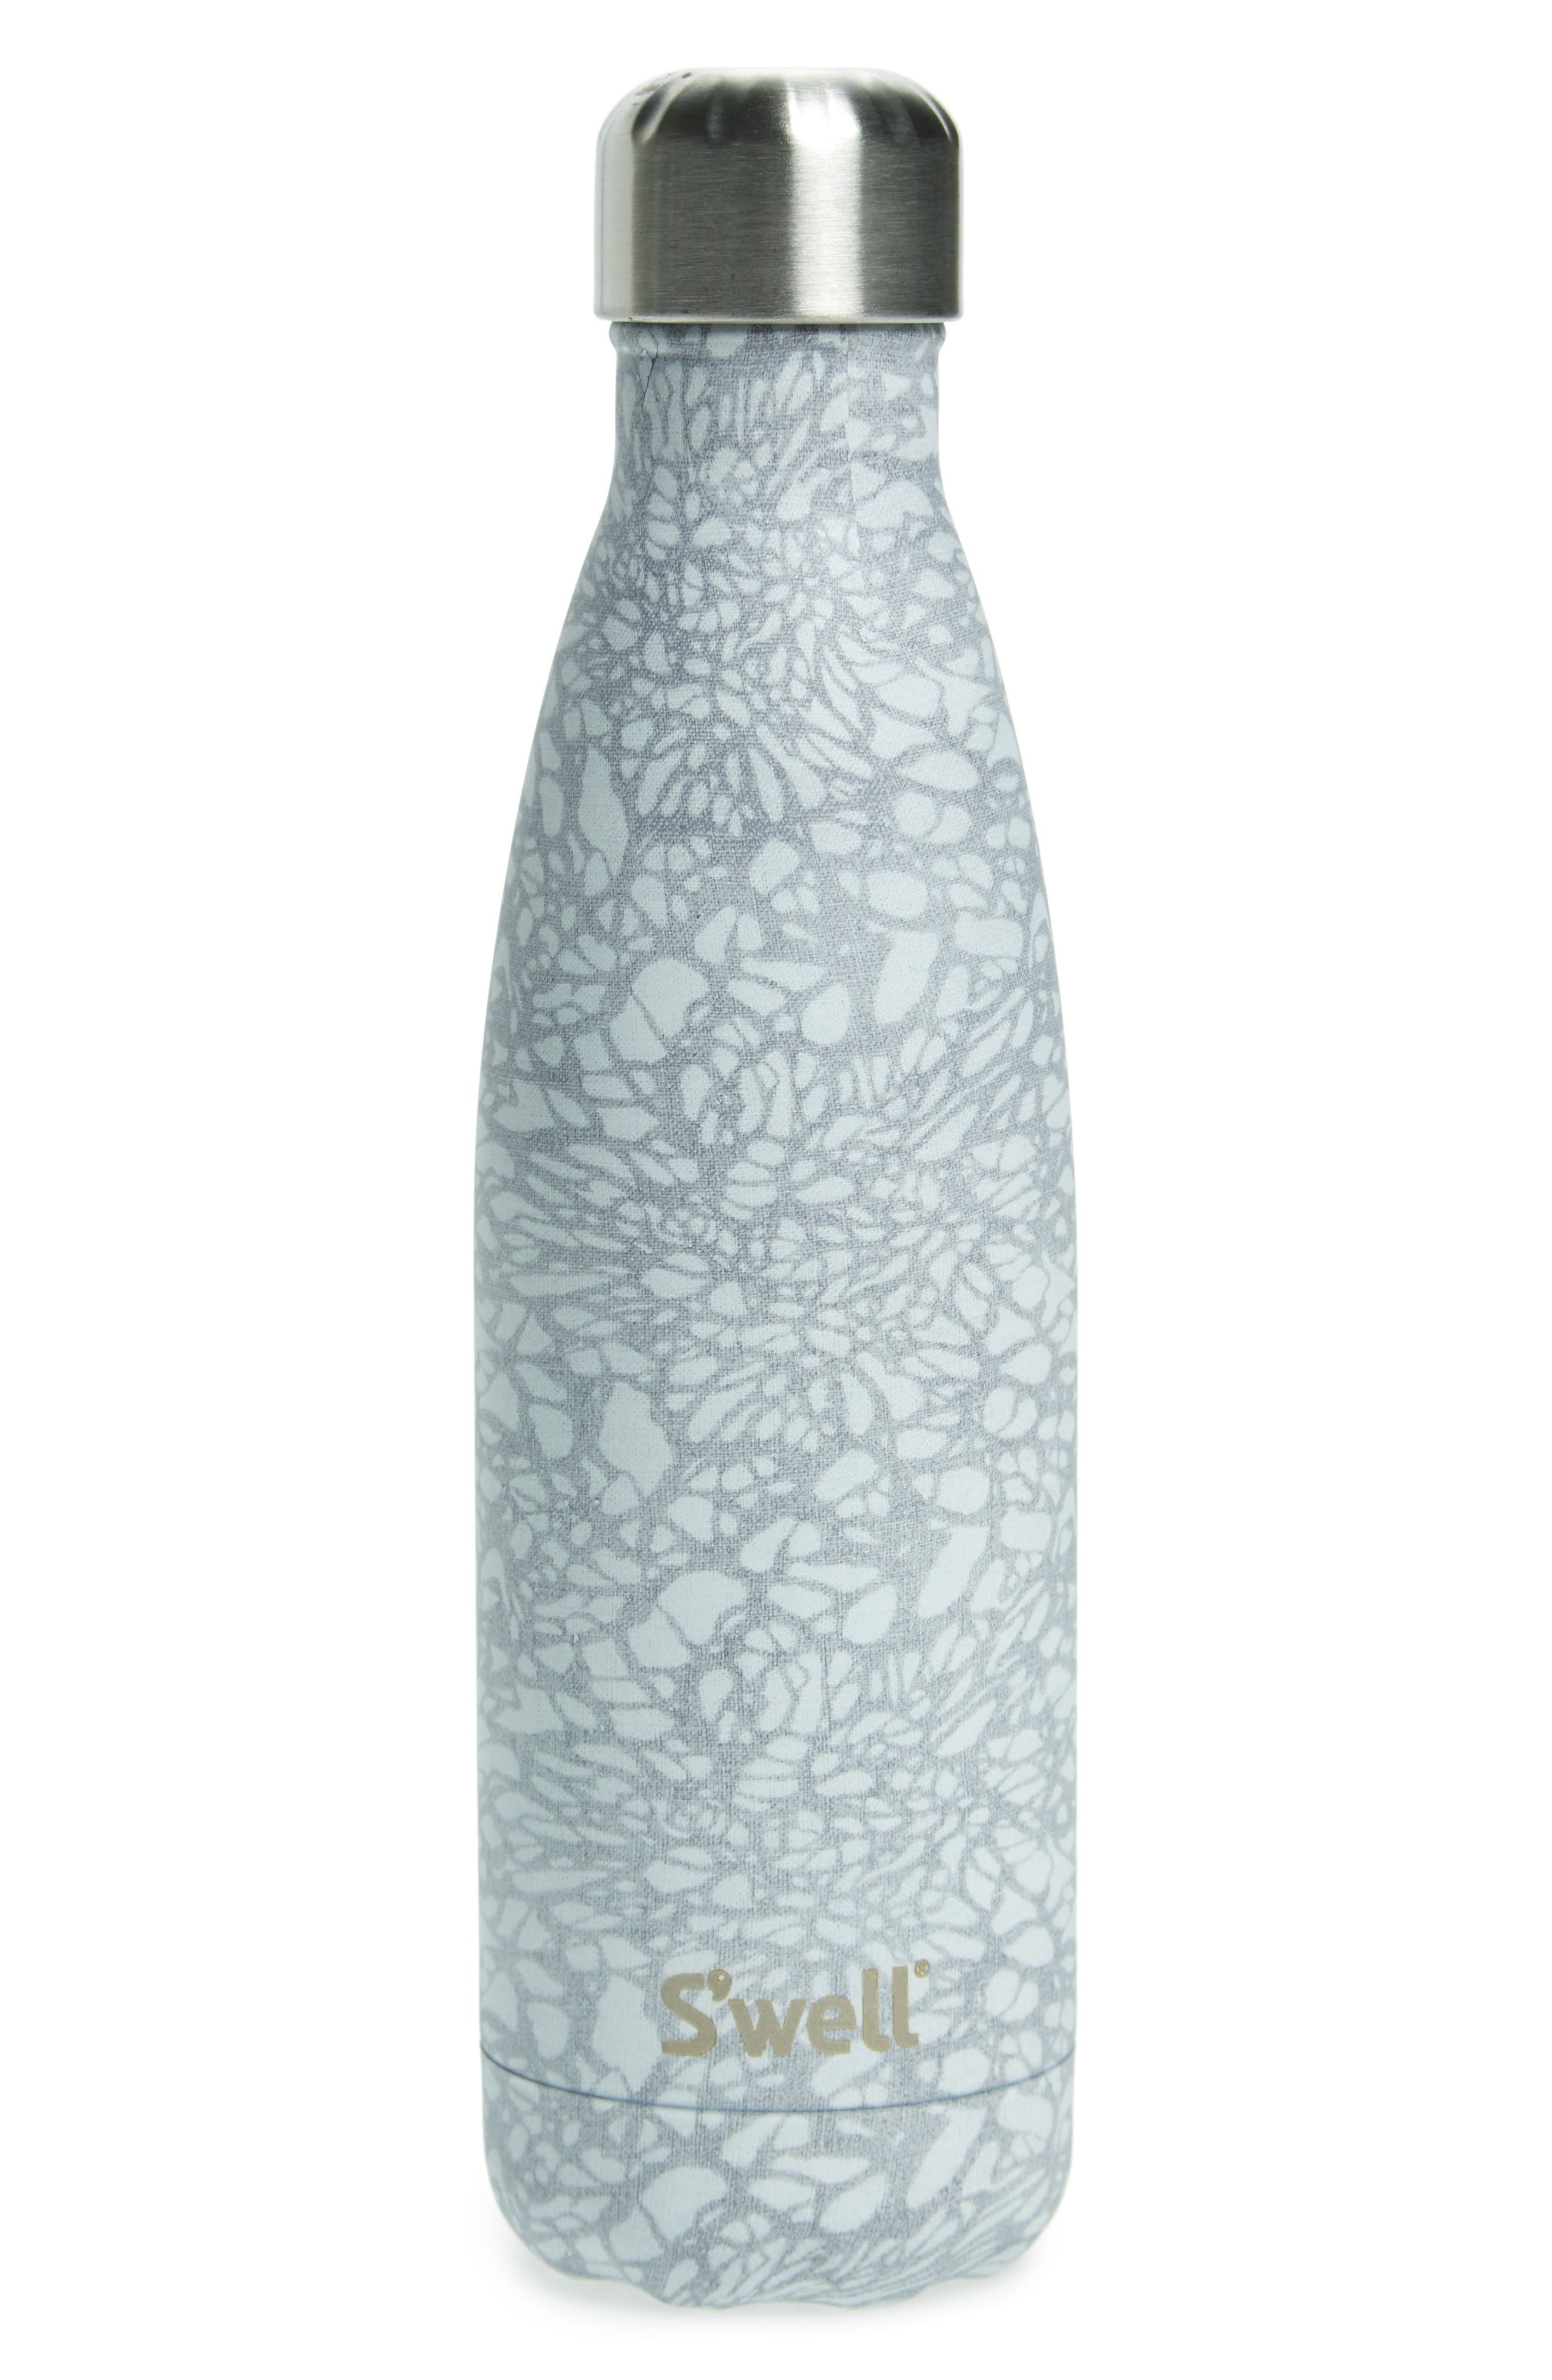 Main Image - S'well White Lace Insulated Stainless Steel Water Bottle